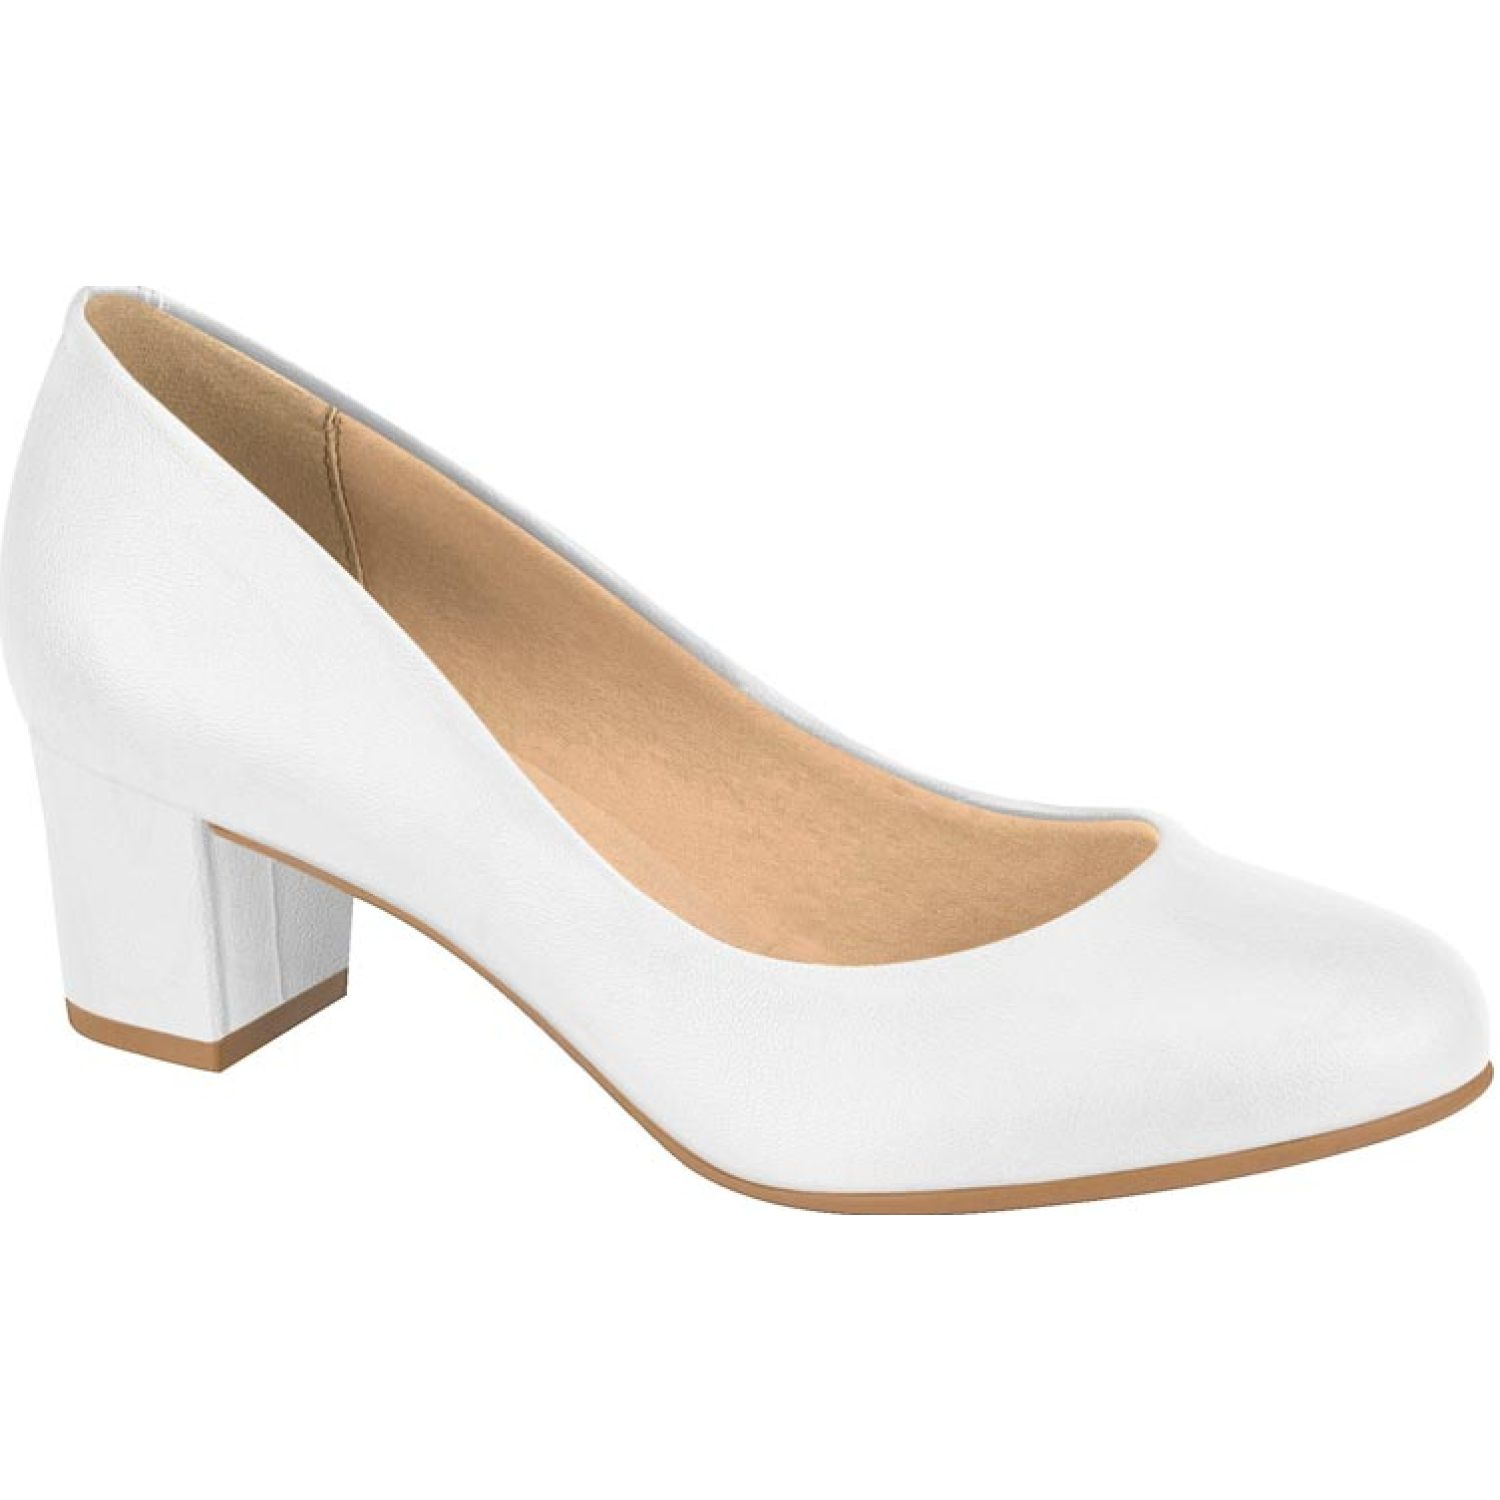 BEIRA RIO 4777.309.9569-16072 Blanco Estiletos y pumps